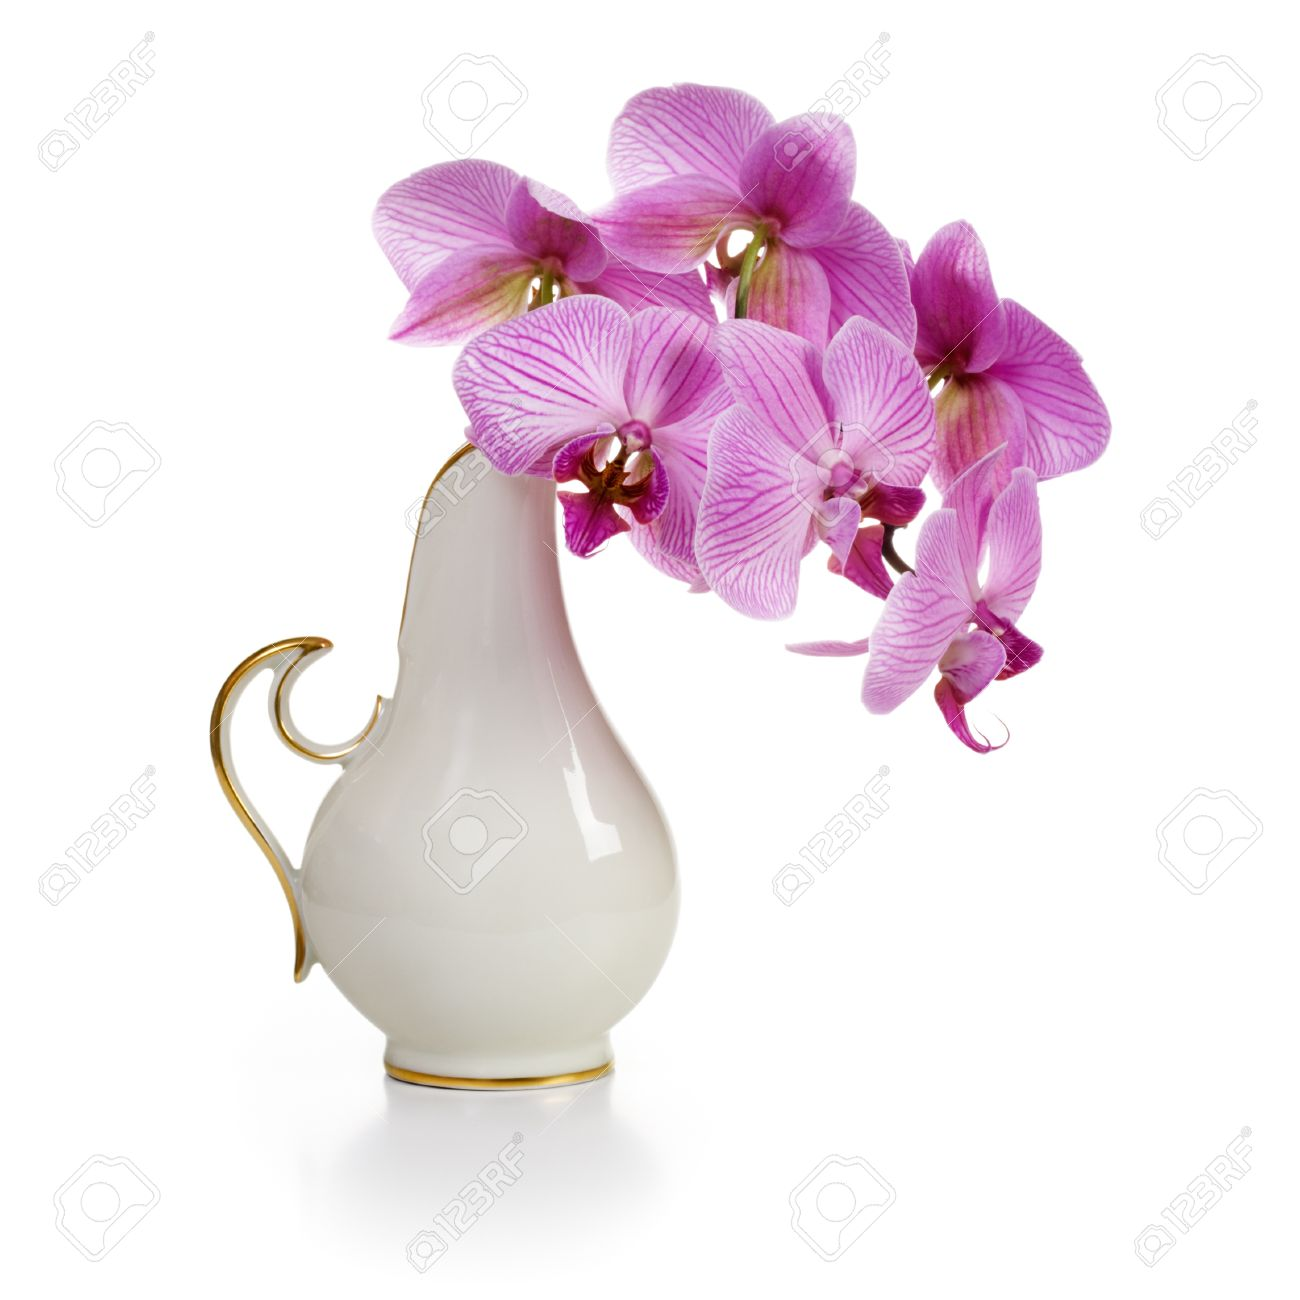 Old White Porcelain Vase With Pink Orchid Flowers On White